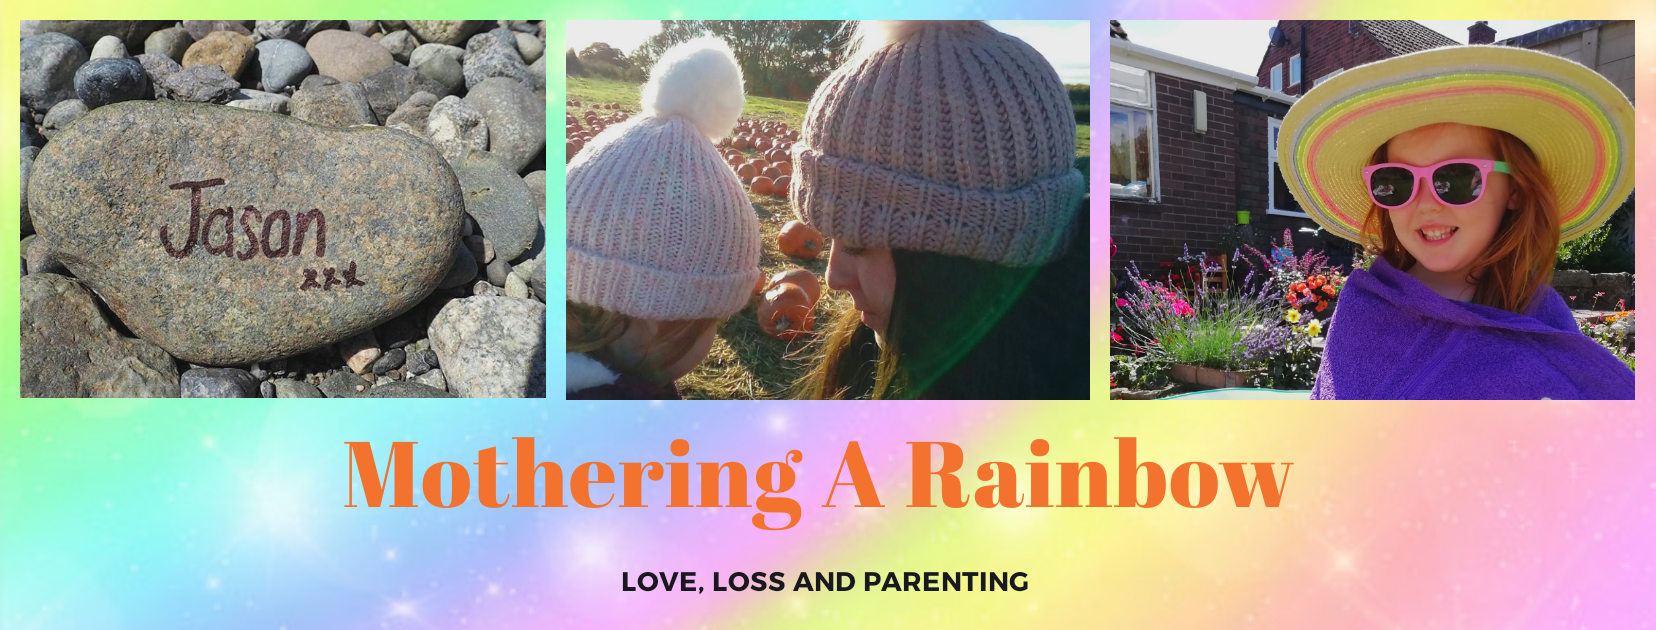 Mothering A Rainbow